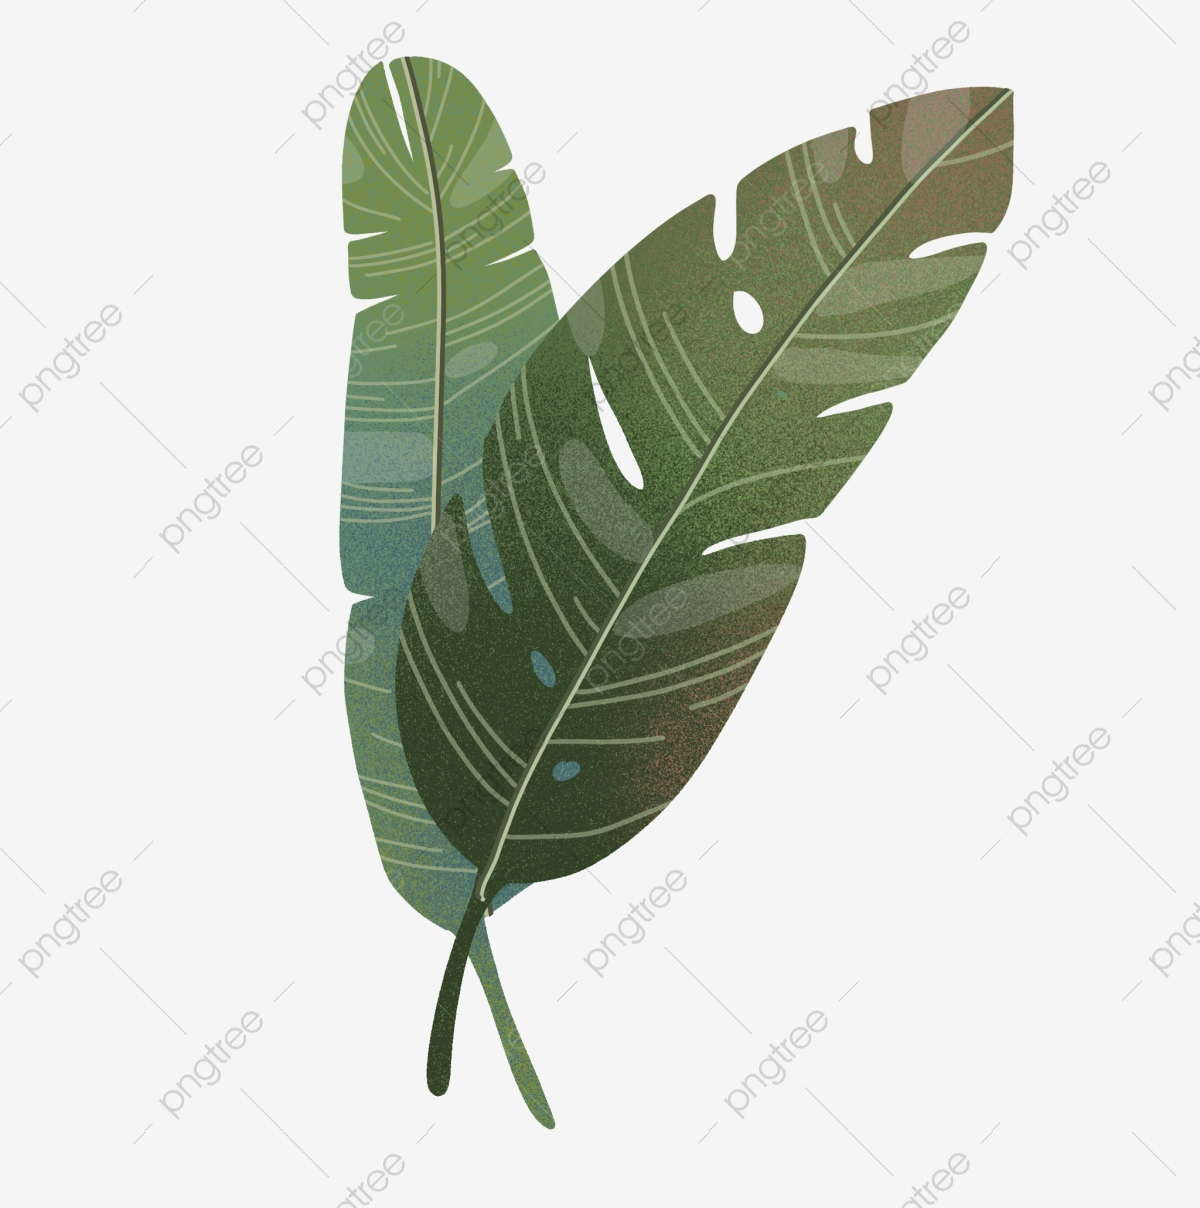 Tropical Rainforest Leaves Plant Green Plant Fresh Png Transparent Clipart Image And Psd File For Free Download To get more templates about posters,flyers seamless pattern with tropical leaves: https pngtree com freepng tropical rainforest leaves 4706081 html